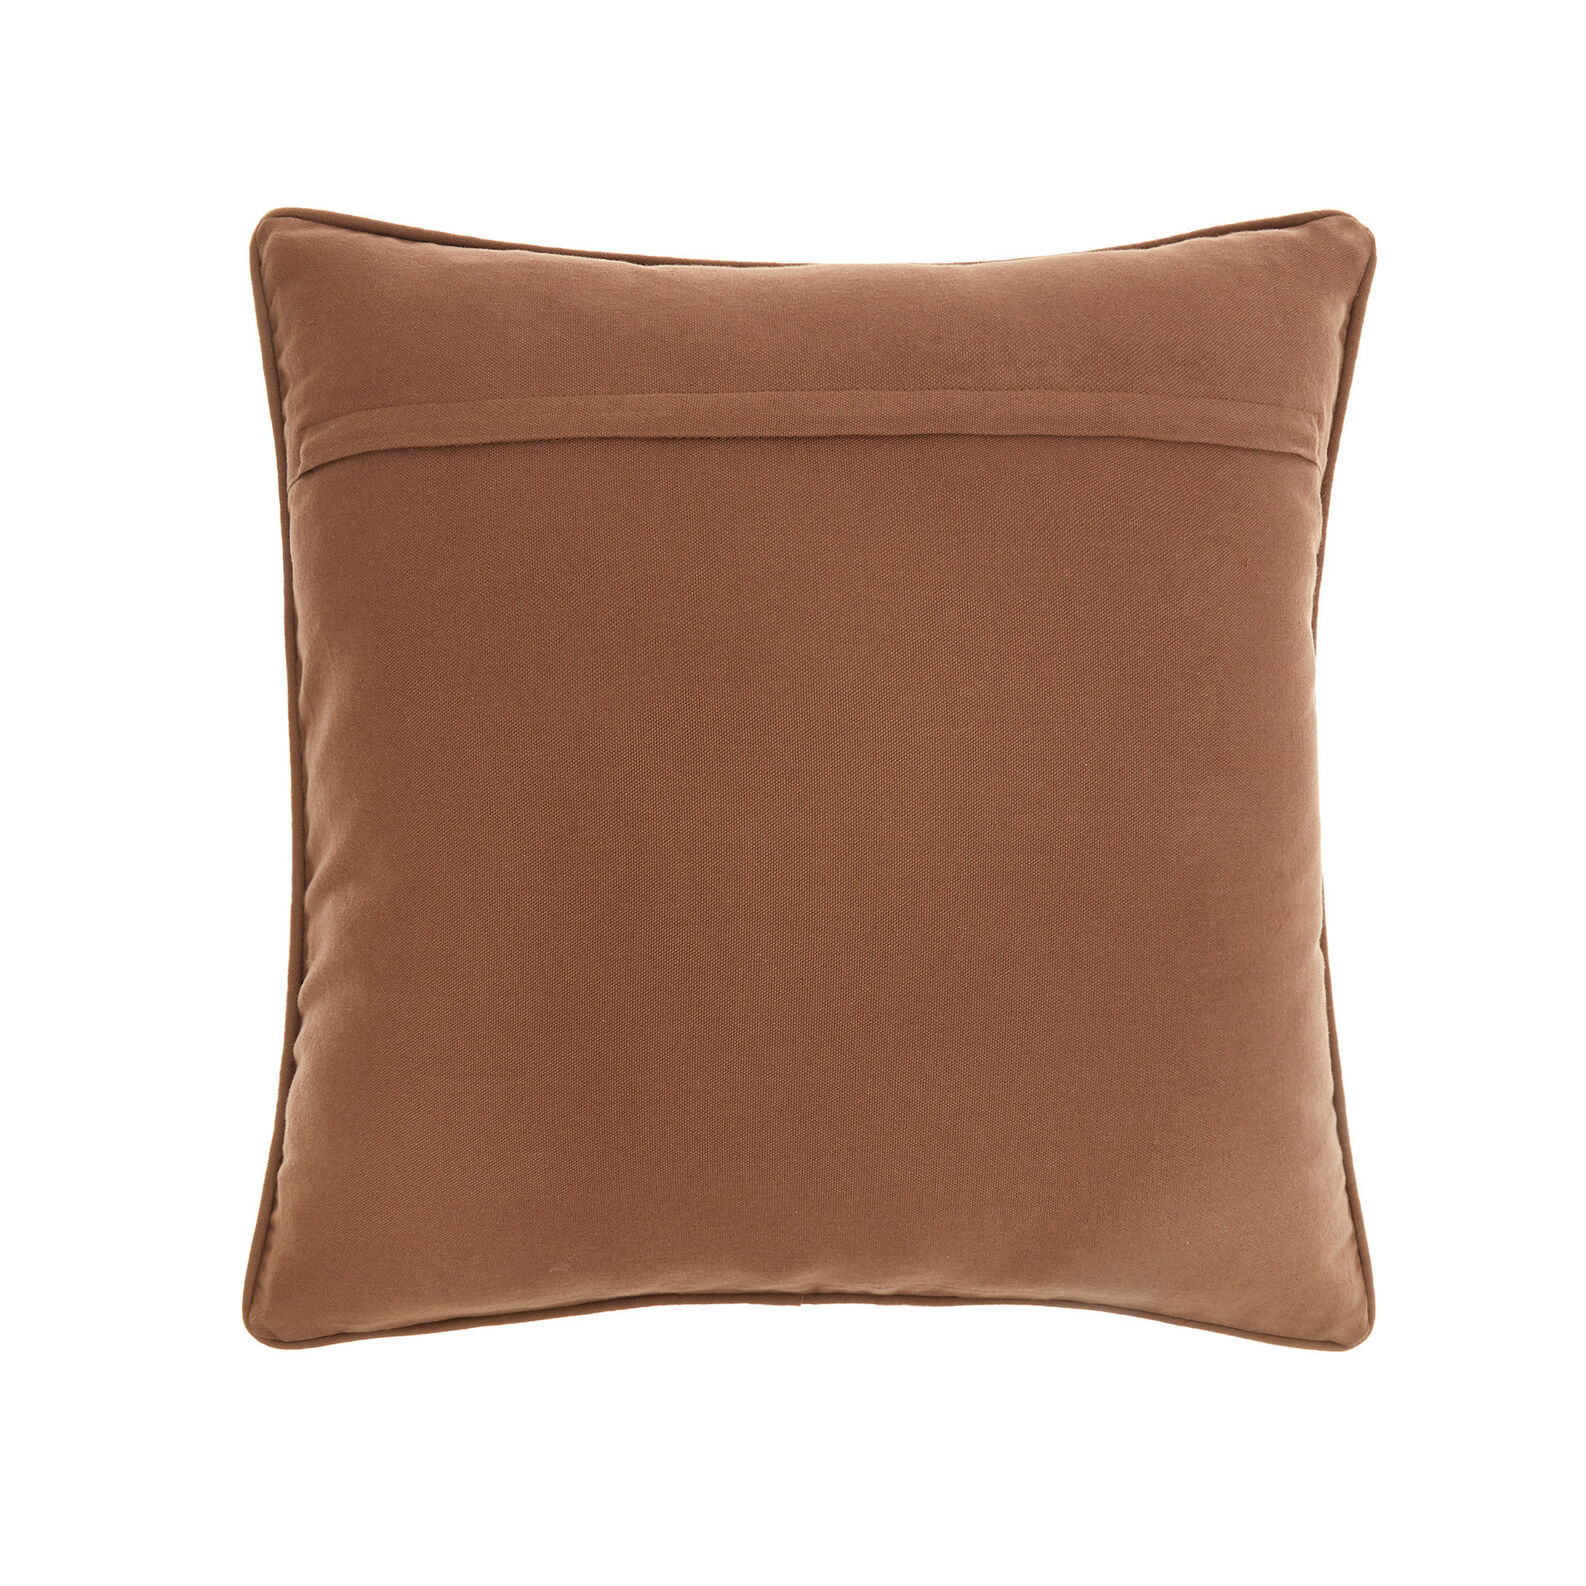 Cotton velvet cushion with quilted effect (45x45cm)